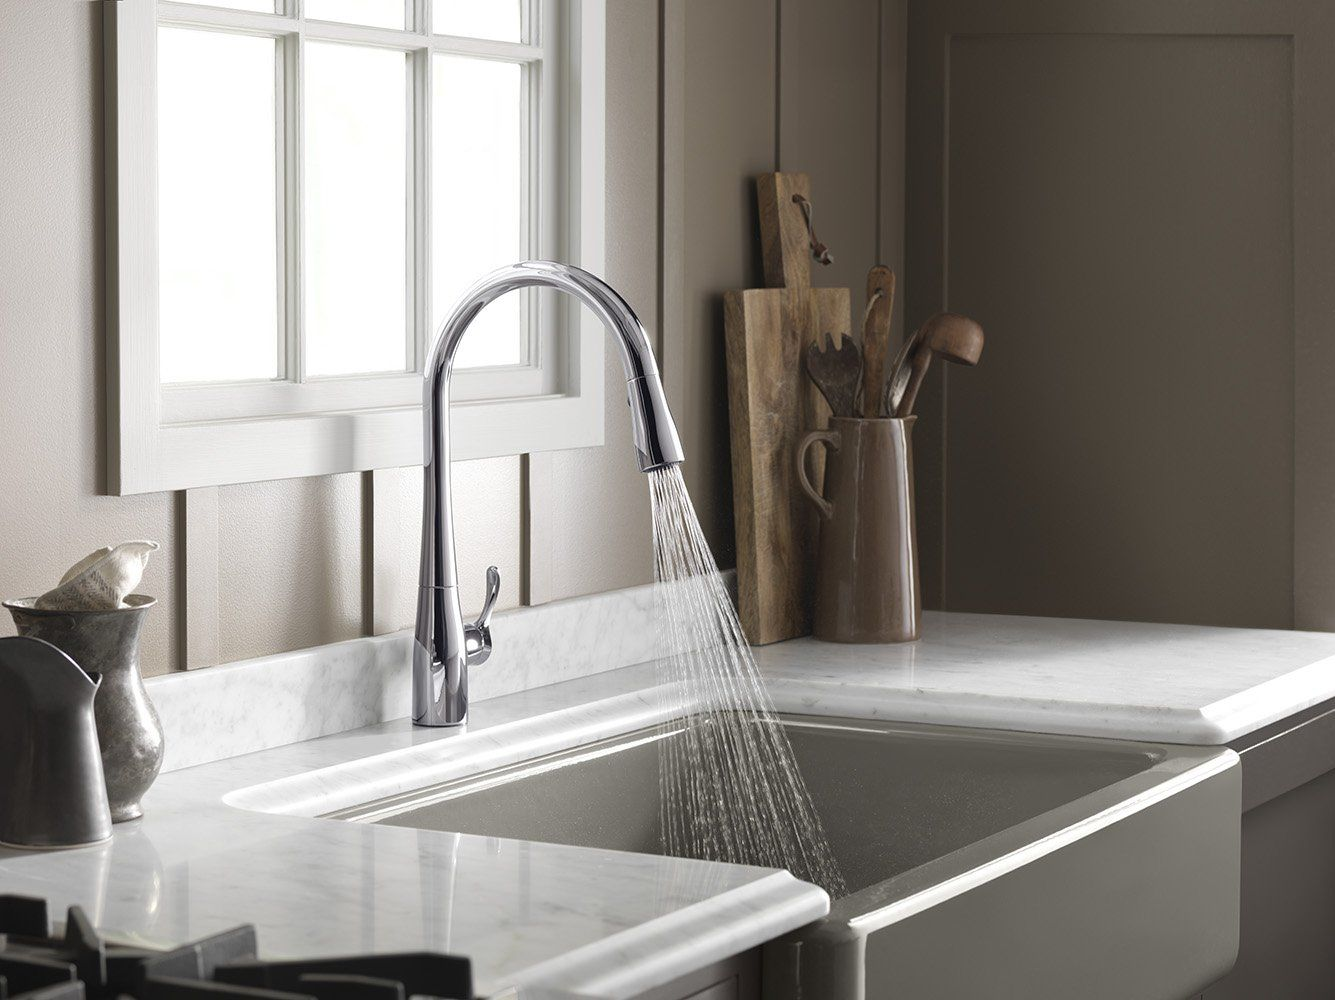 KOHLER K-596-CP Simplice Single-Hole Pull-down Kitchen Faucet ...